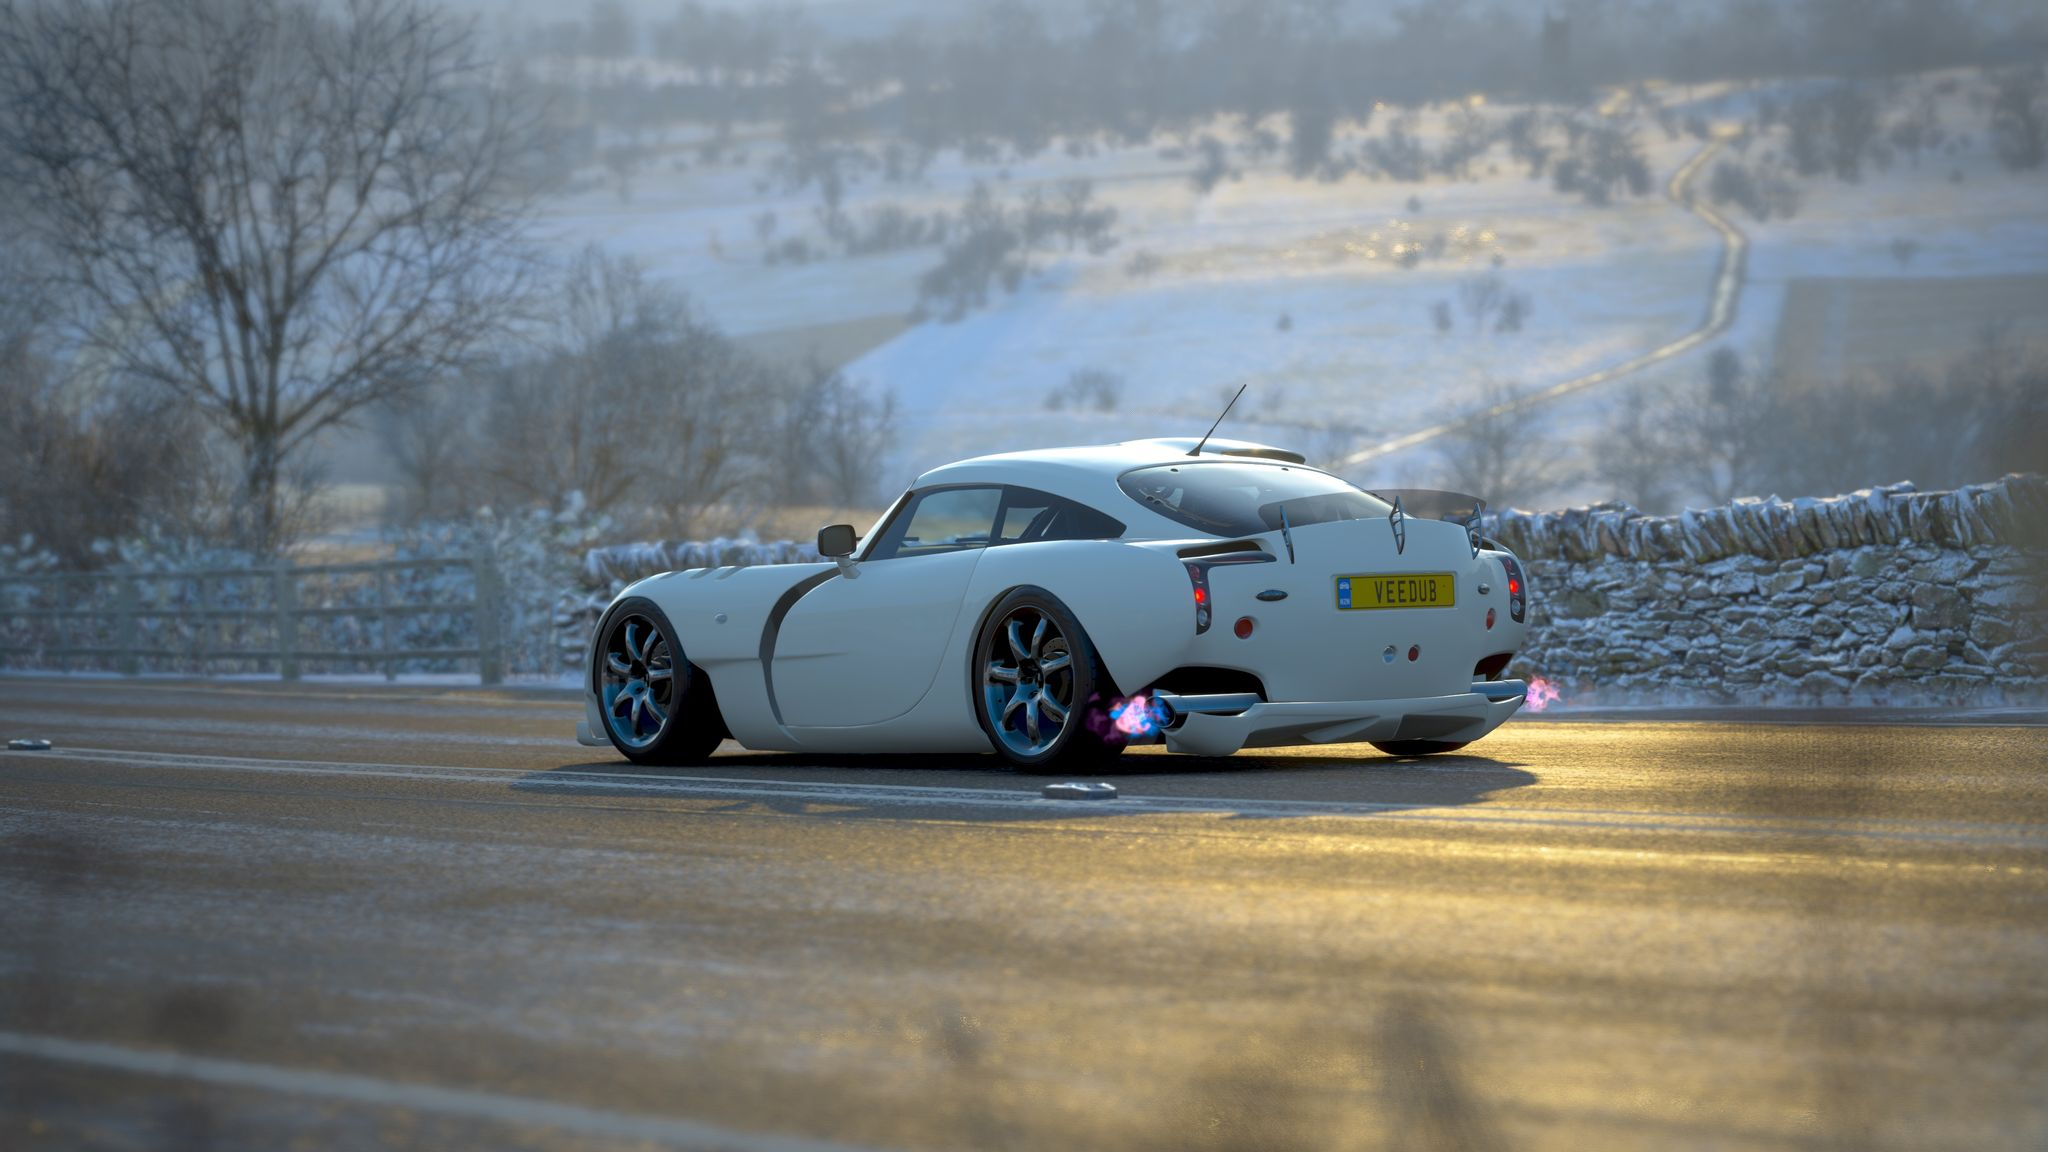 A screenshot (that looks more like a photo) of the rear 3/4 profile of a white TVR Sagaris driving down a road with snowy hills in the background. There's fire coming out of the exhaust pipes.